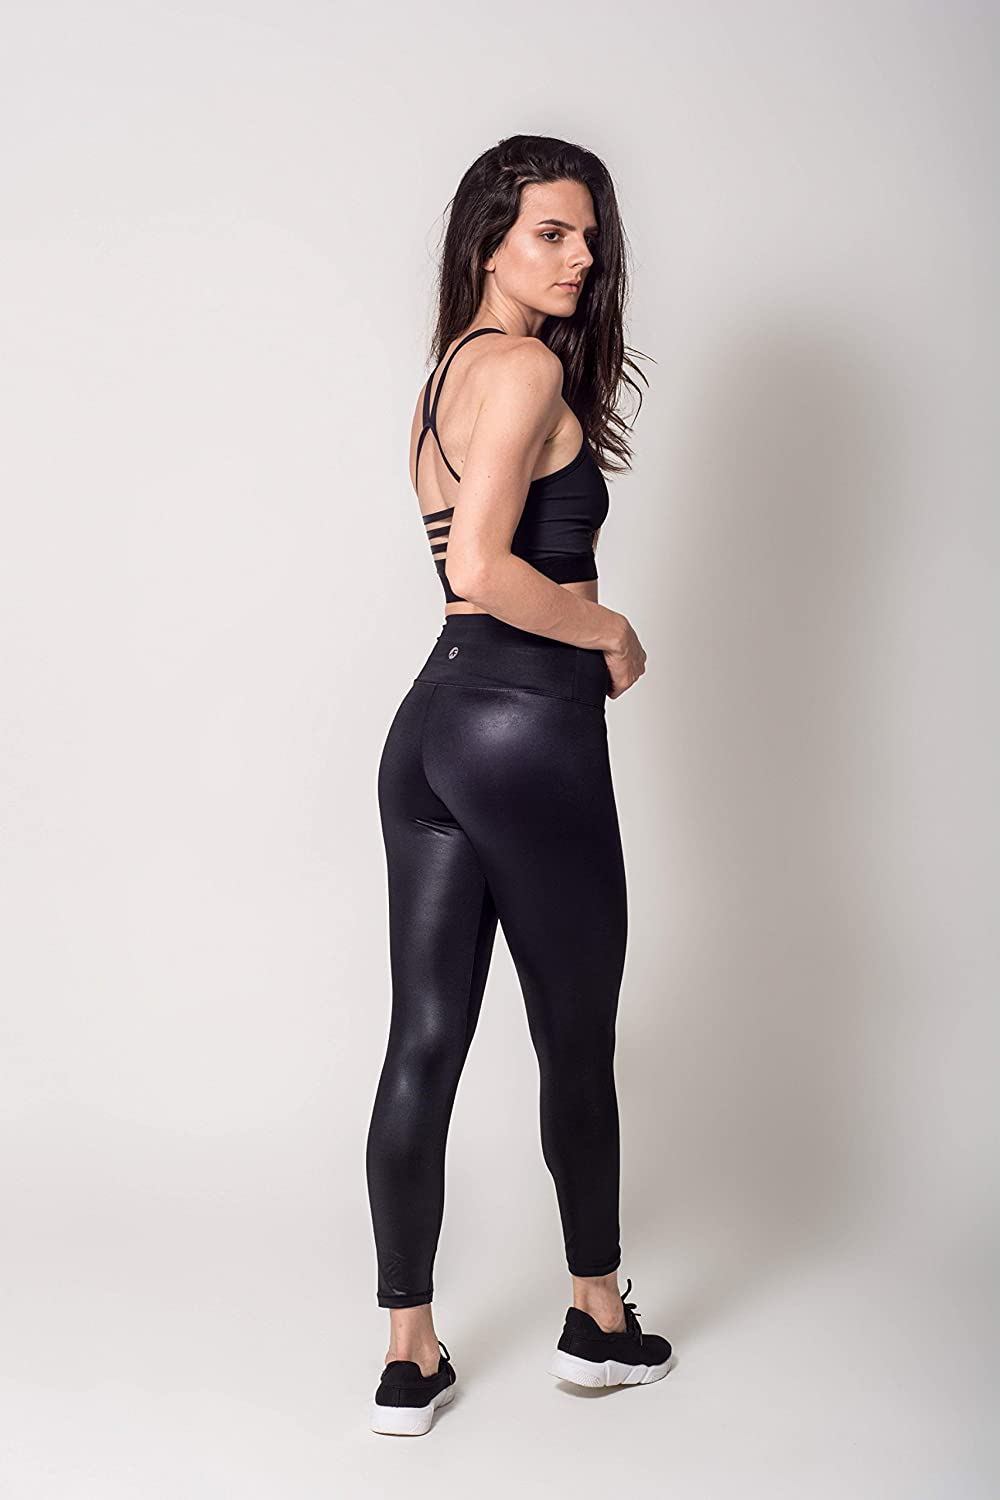 Activefit Lux Fashion Stretch High Waisted Workout Yoga Pants Black Leggings for Women